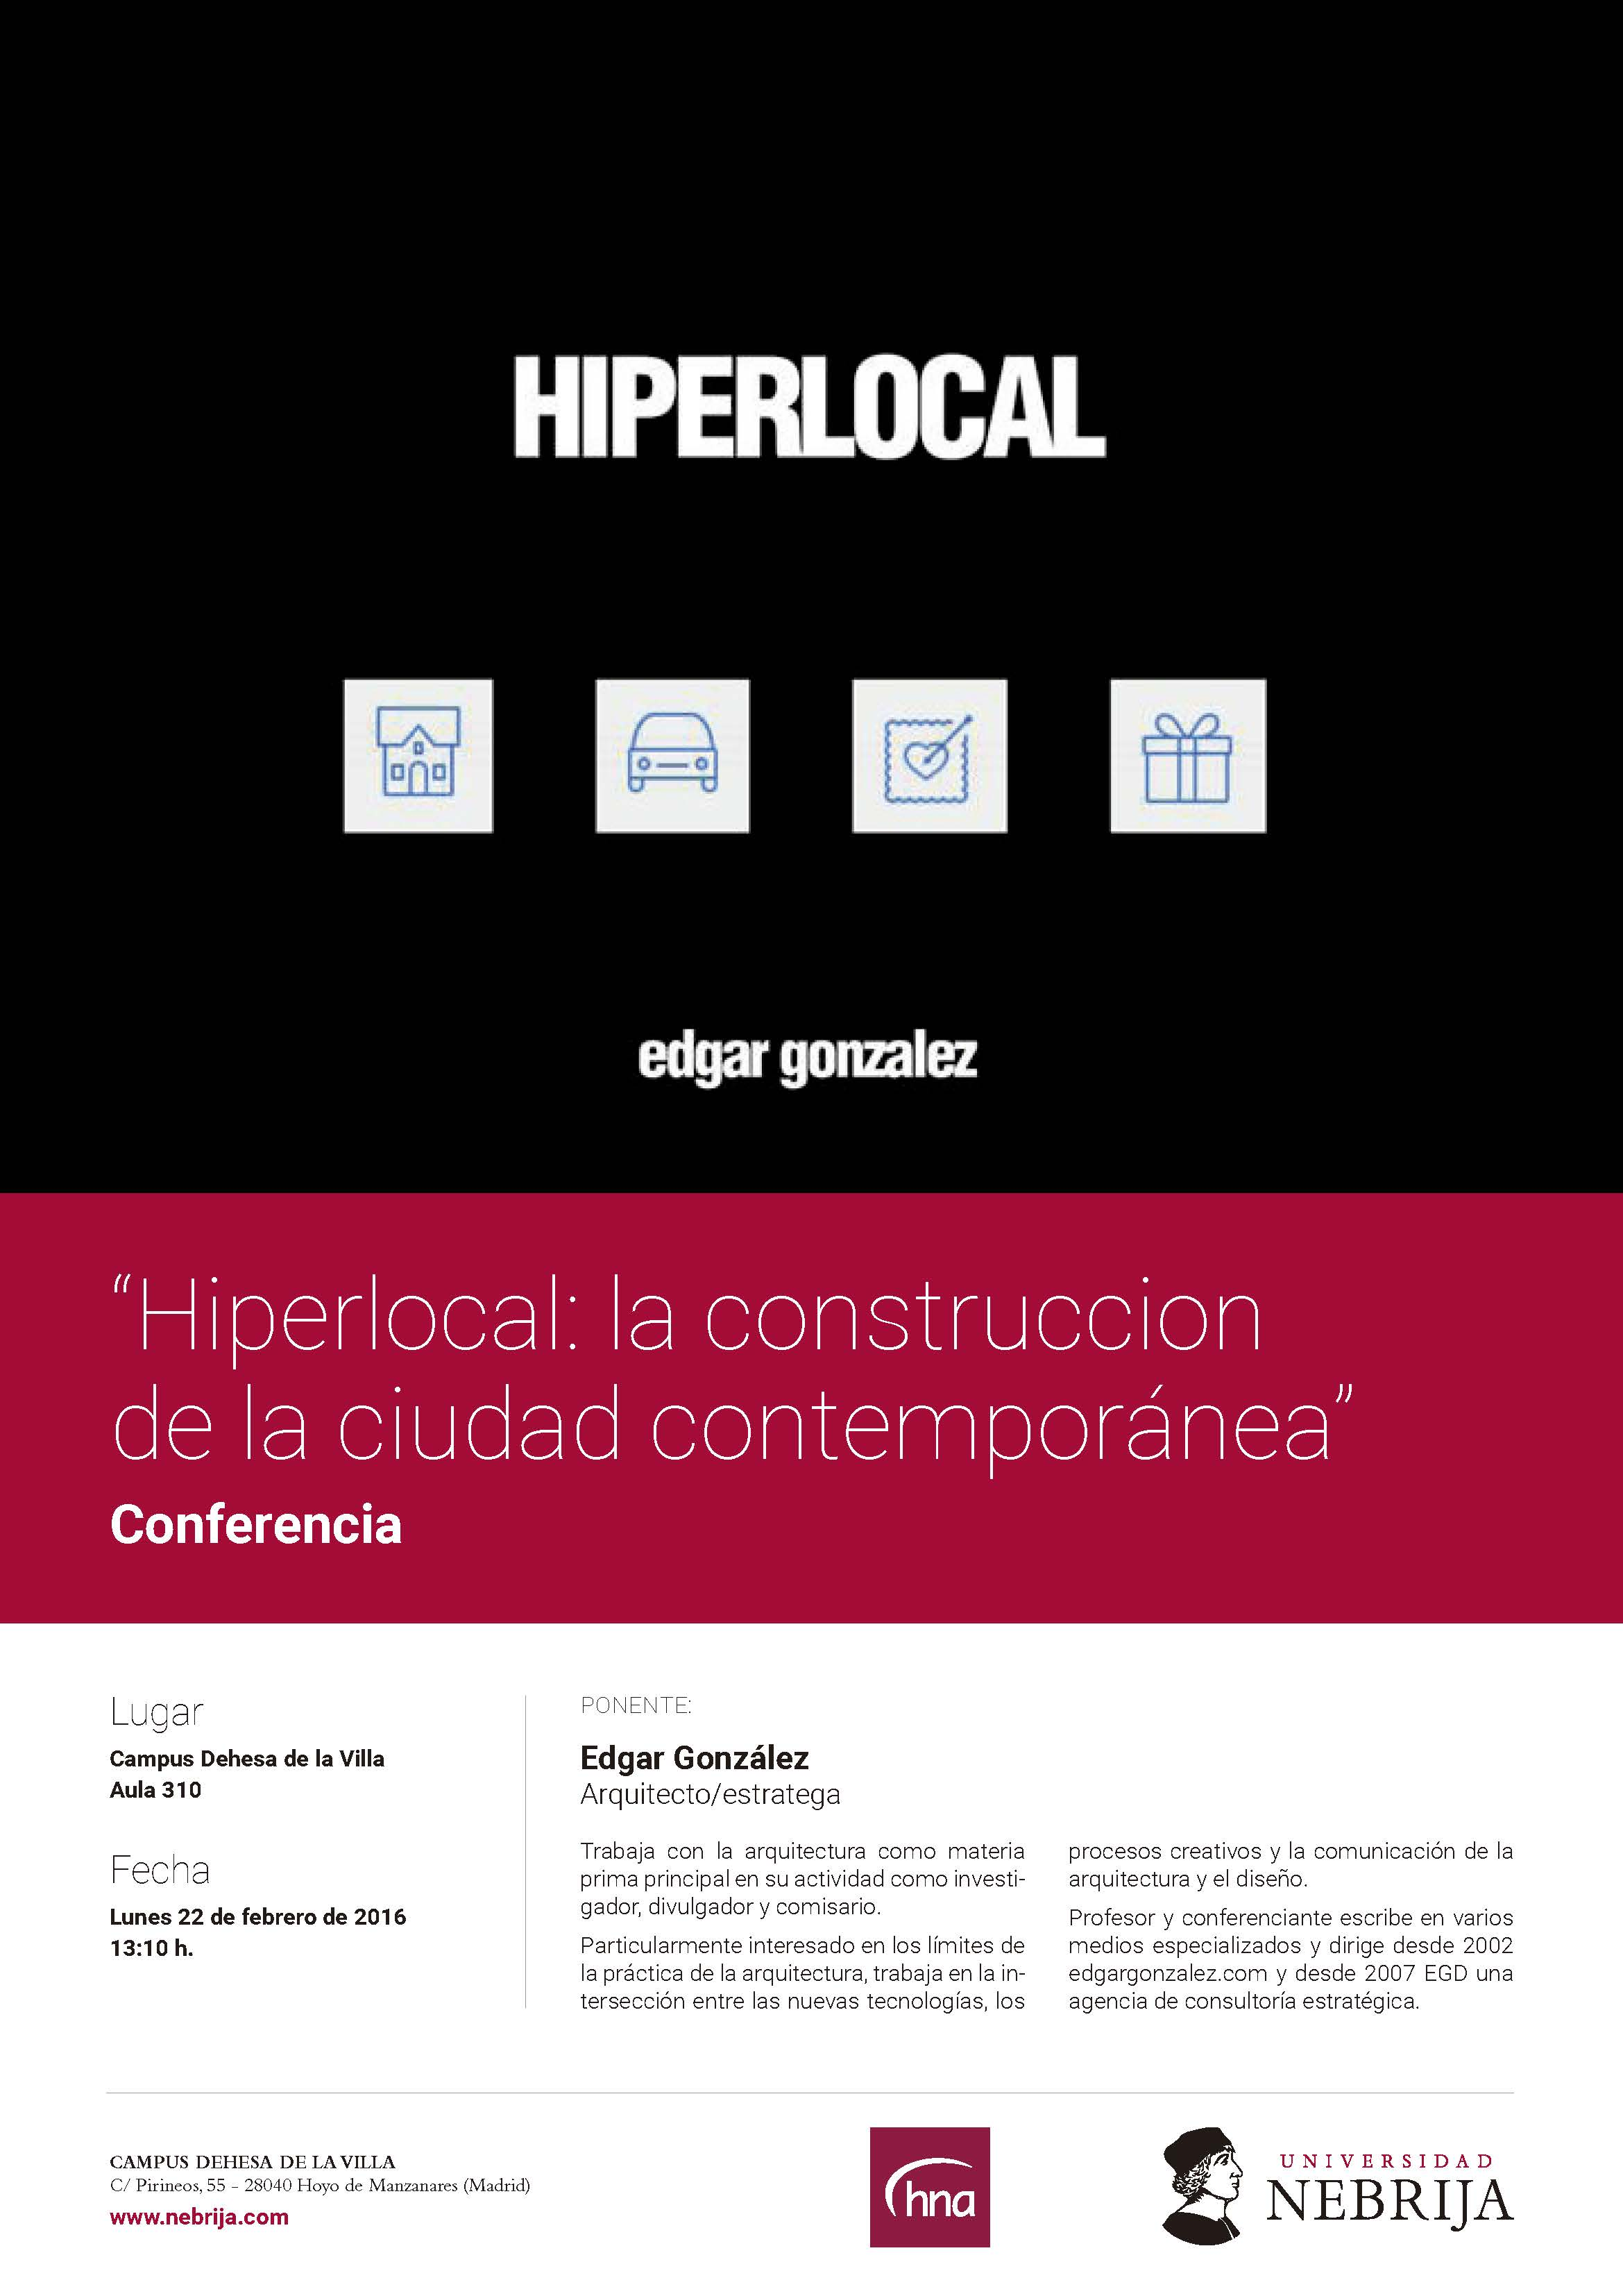 HIPERLOCAL